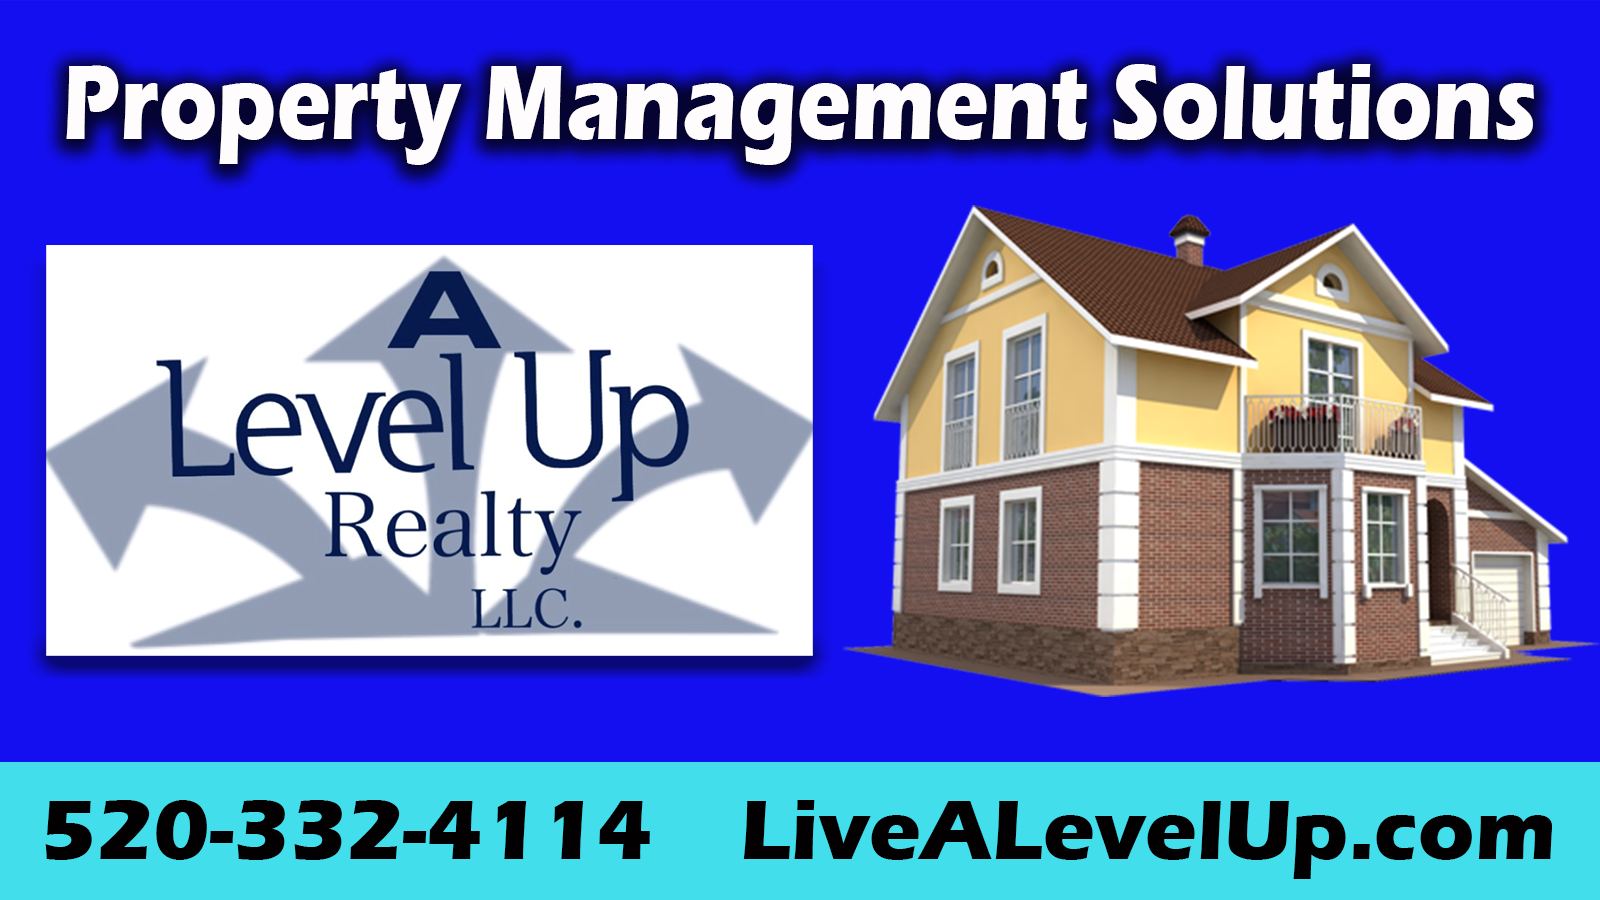 A Level Up Realty